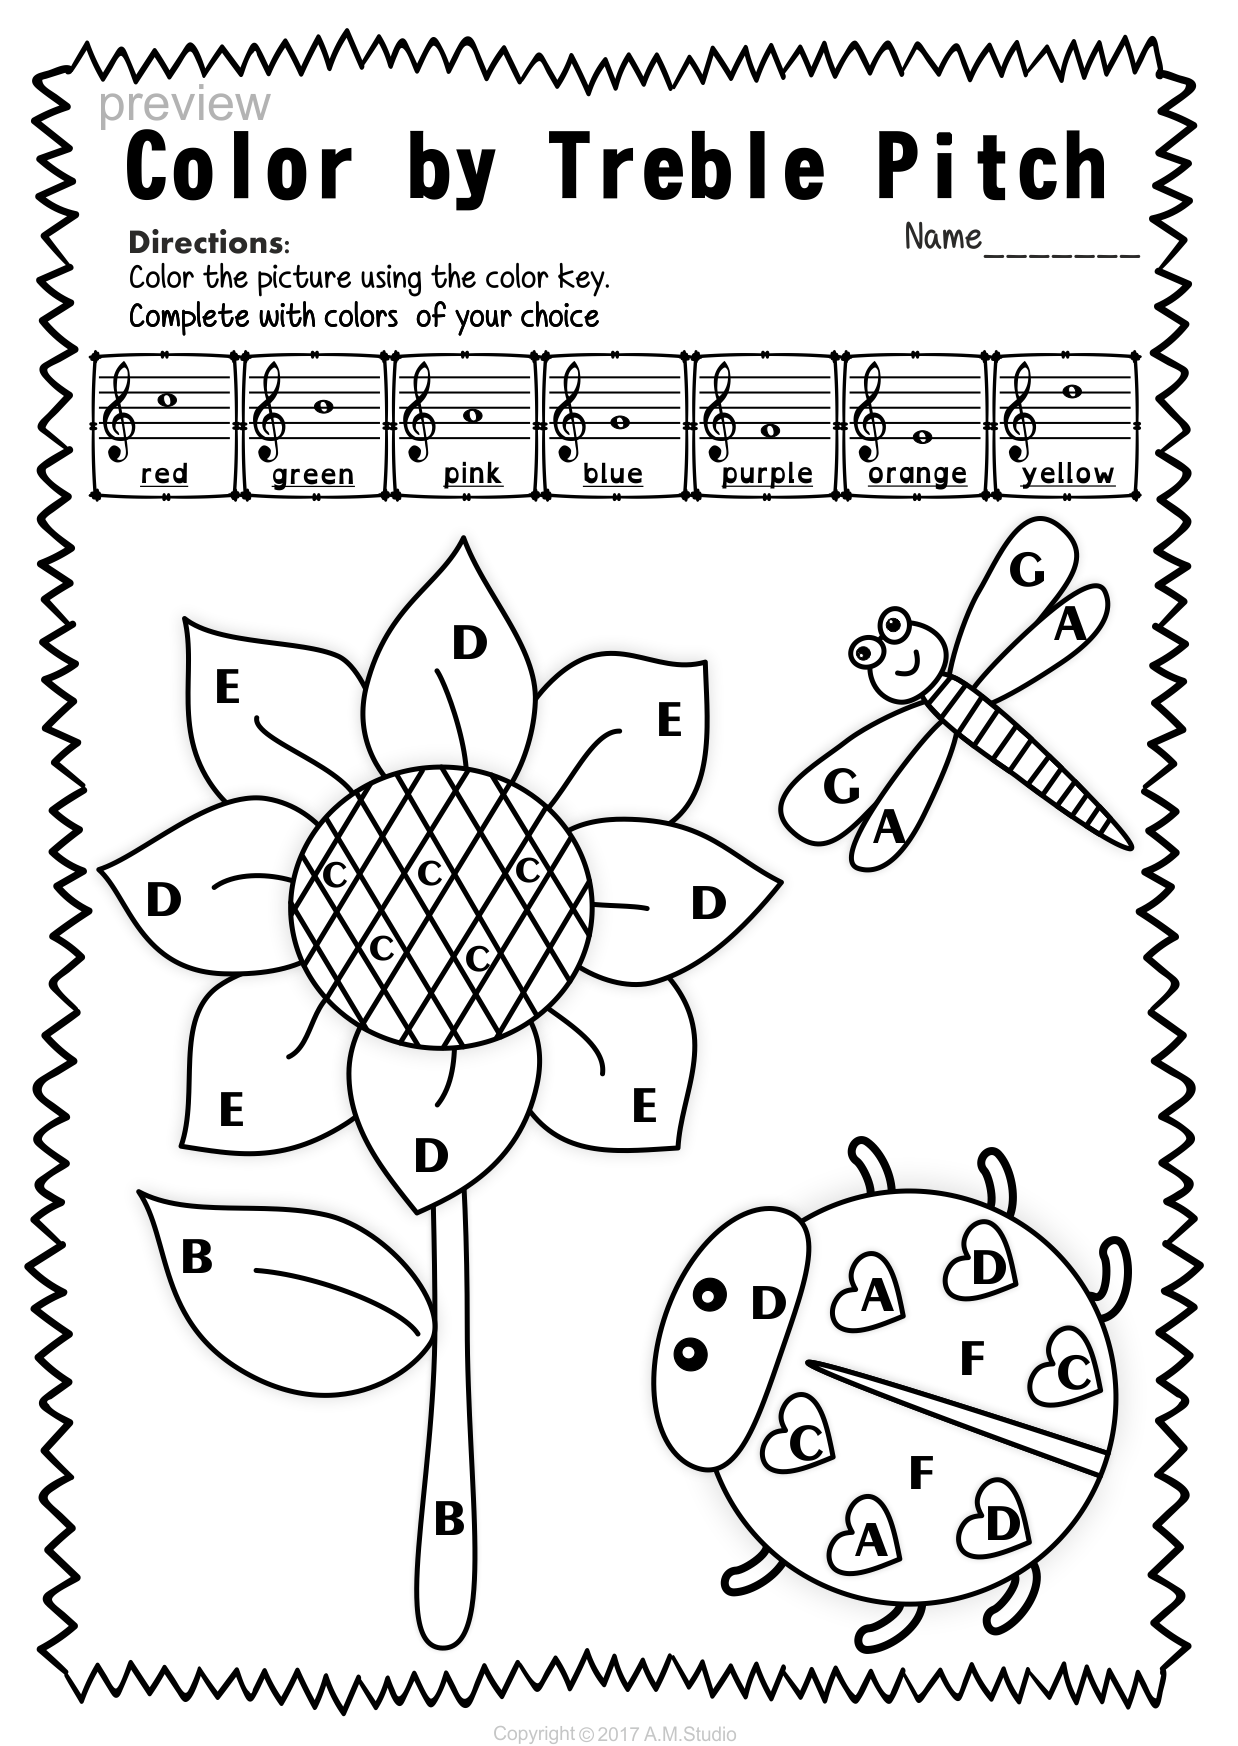 worksheet Note Naming Worksheets For Piano treble clef note naming worksheets for spring music spring